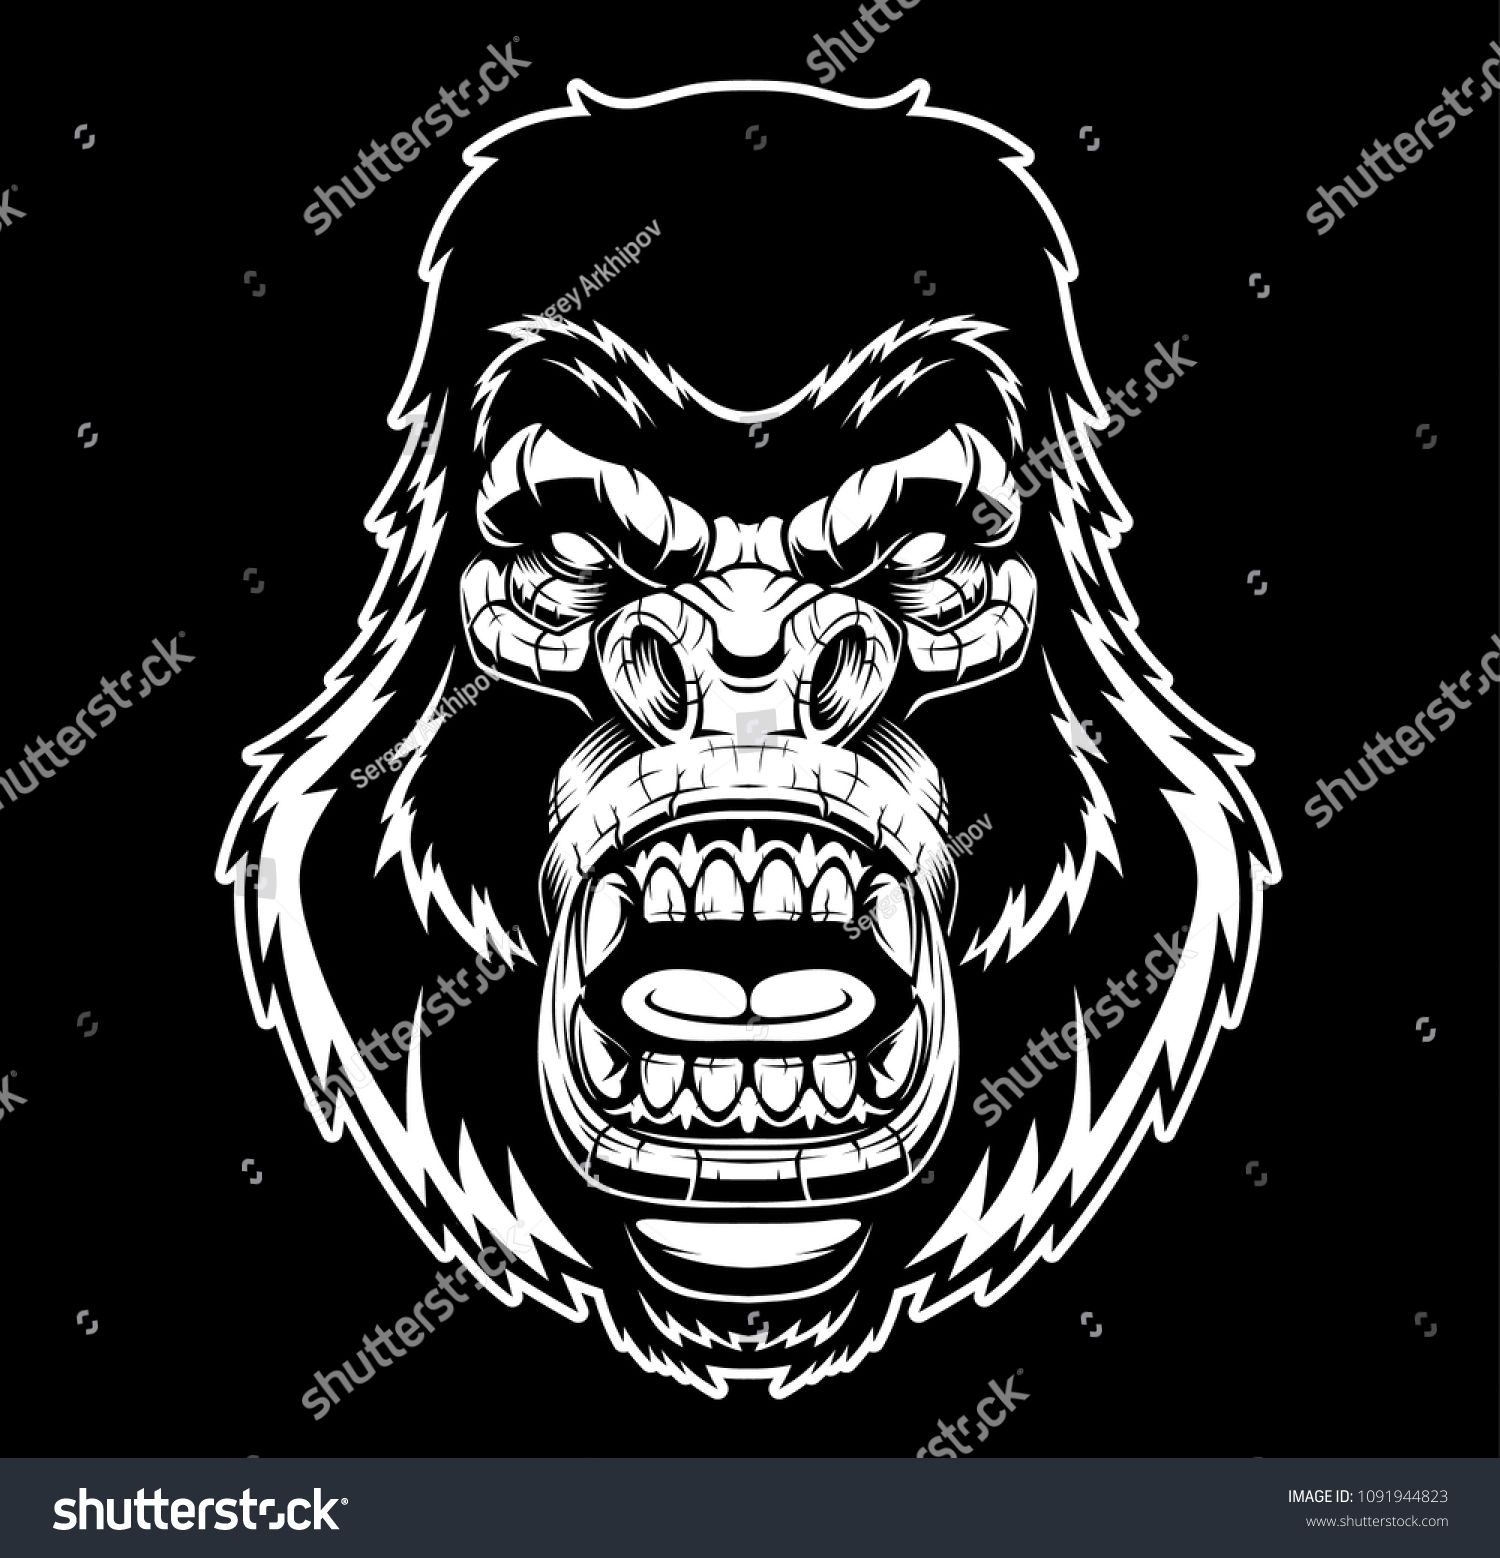 1500x1558 Angry Gorilla Head. Vector Illustration. Shutterstock